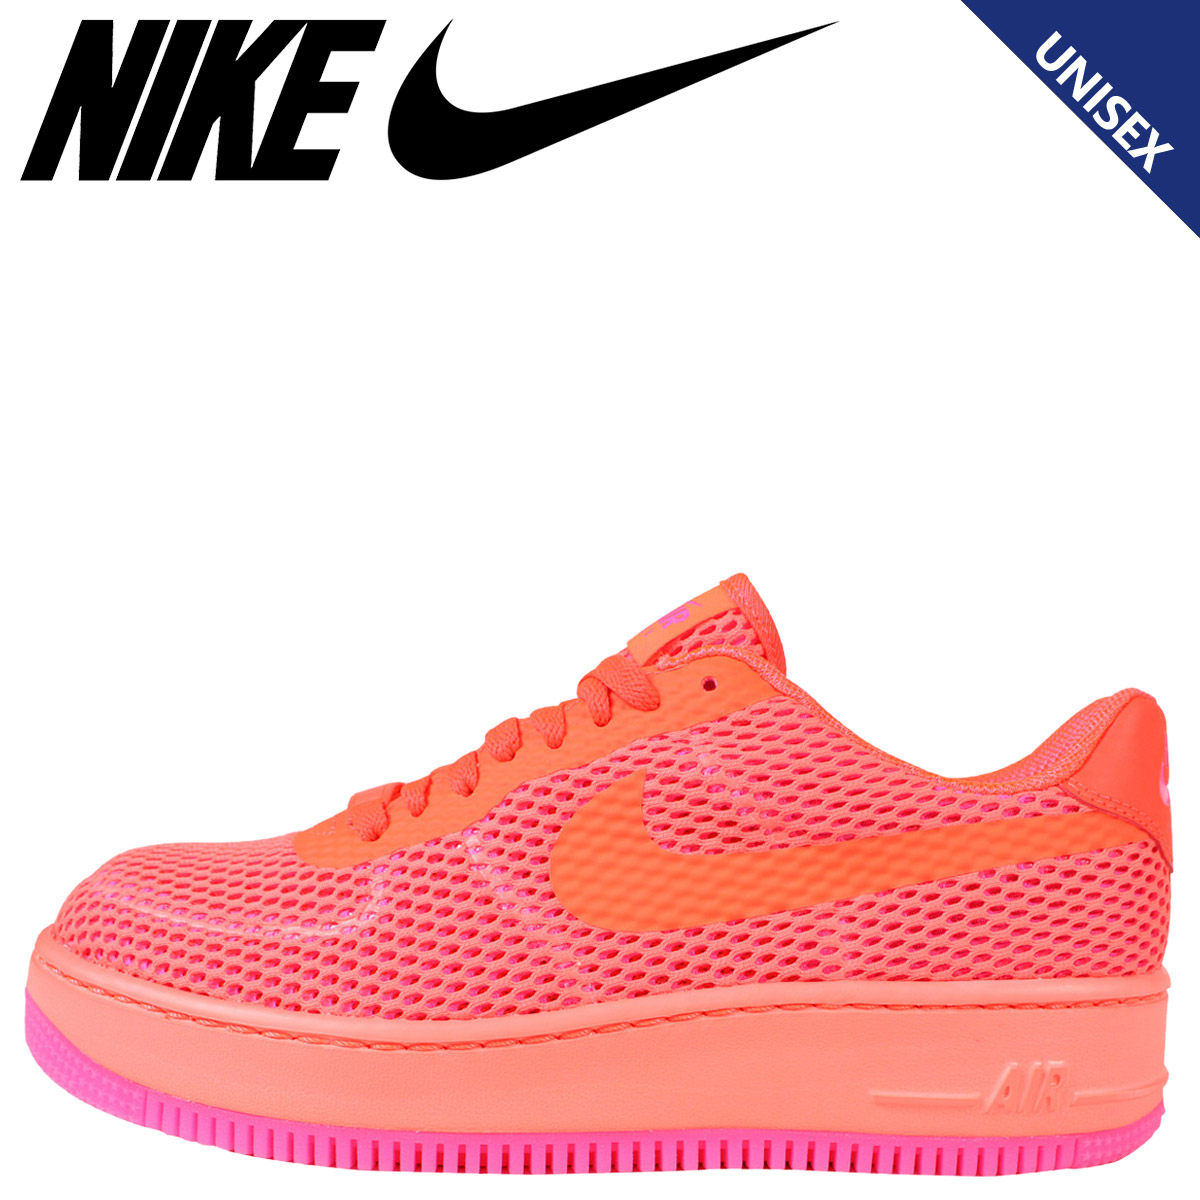 quality design 92fed bd5d6 NIKE Nike Air Force sneakers Womens WMNS AIR FORCE 1 UP STEP BR air force 1  833123-800 mens shoes Orange